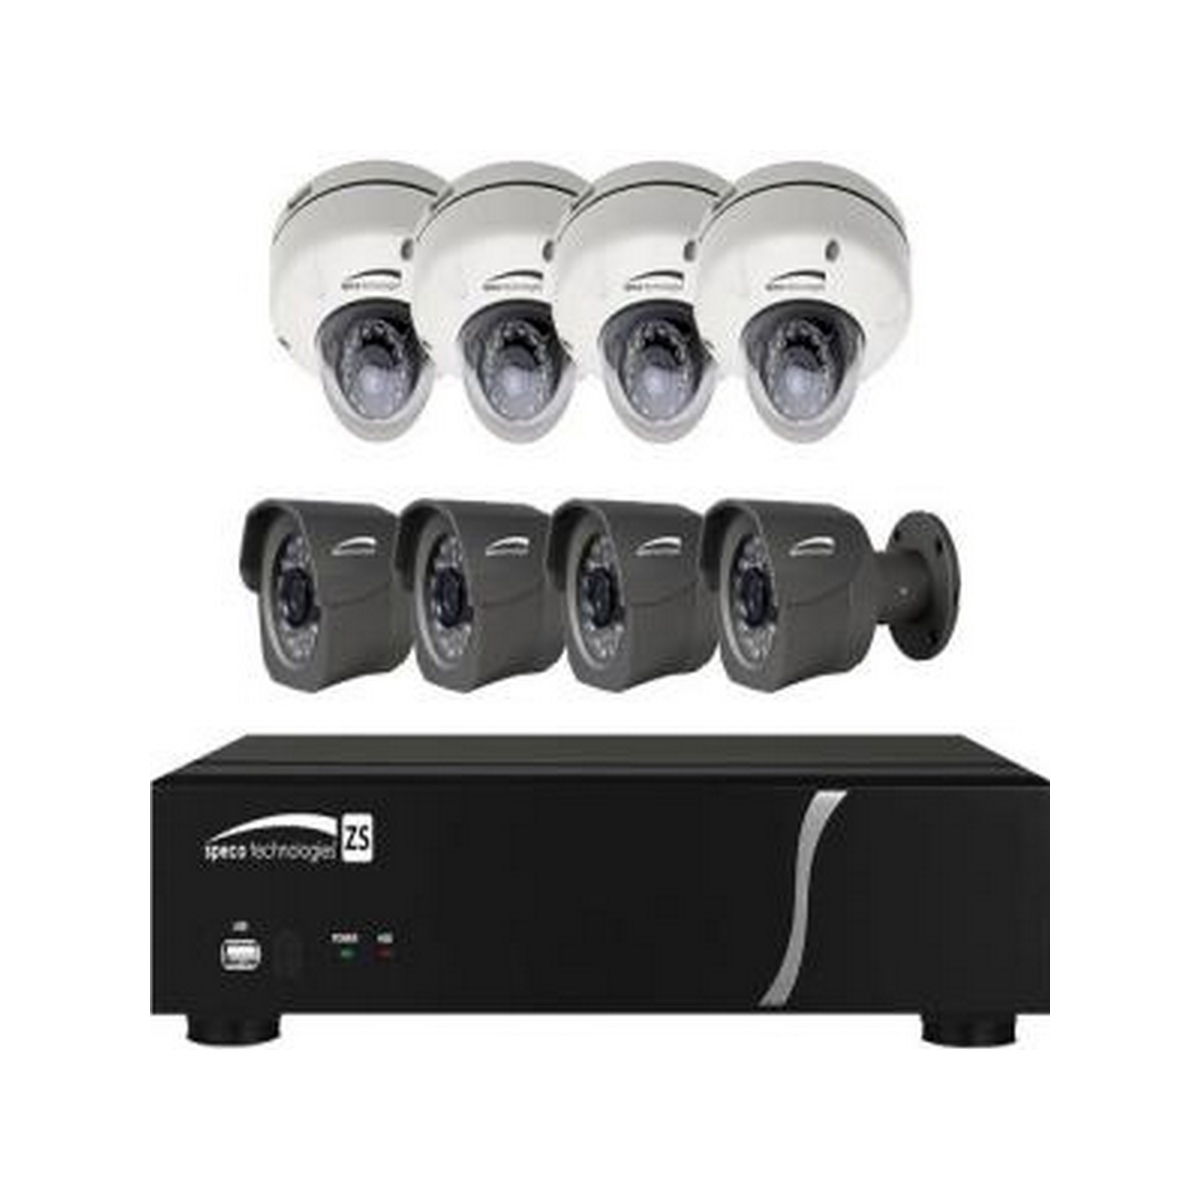 Speco 8 CH Plug-and-Play NVR 1080p, 240FPS, 2TB w/4 Outdoor IR Bullet and 4 Outdoor IR Dome 3.7mm lens